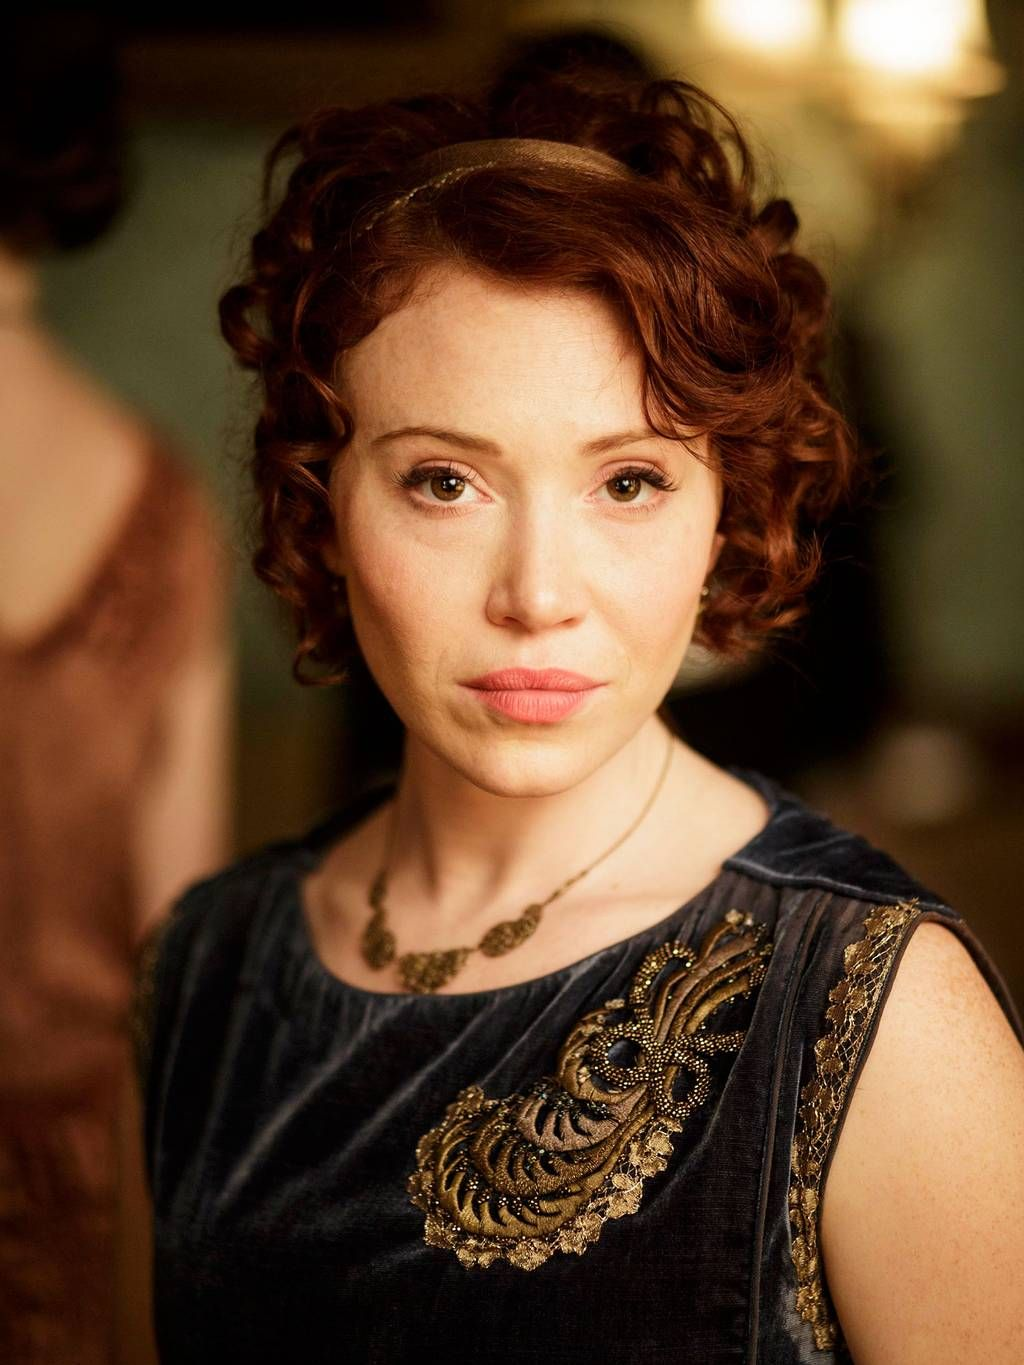 Downton Abbey series 5, episode 1, ITV, review There's